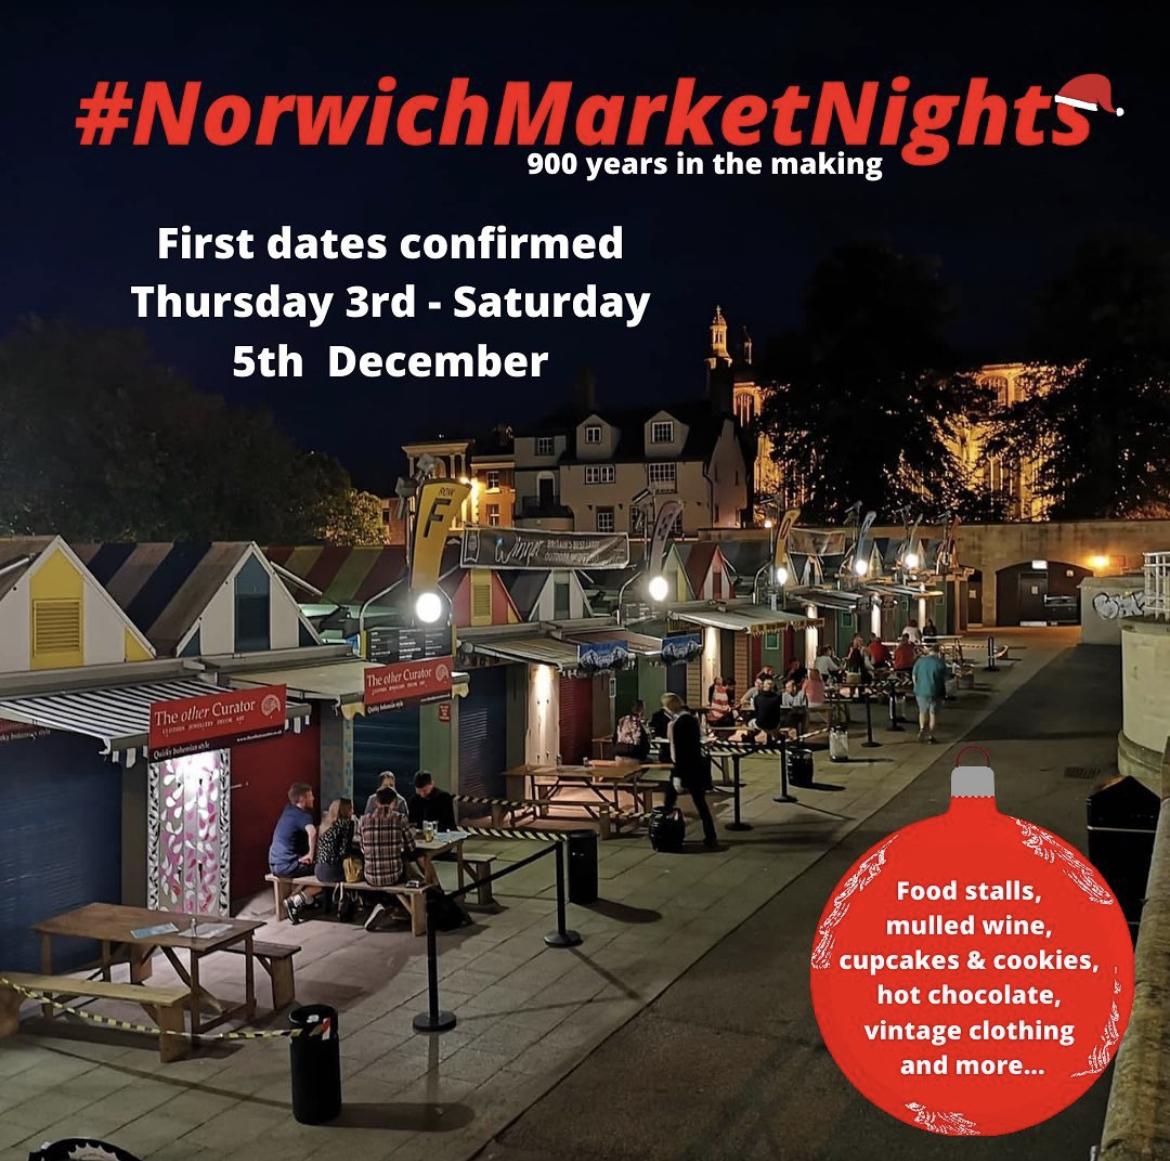 #NorwichMarketNights | NorwichMarket.net